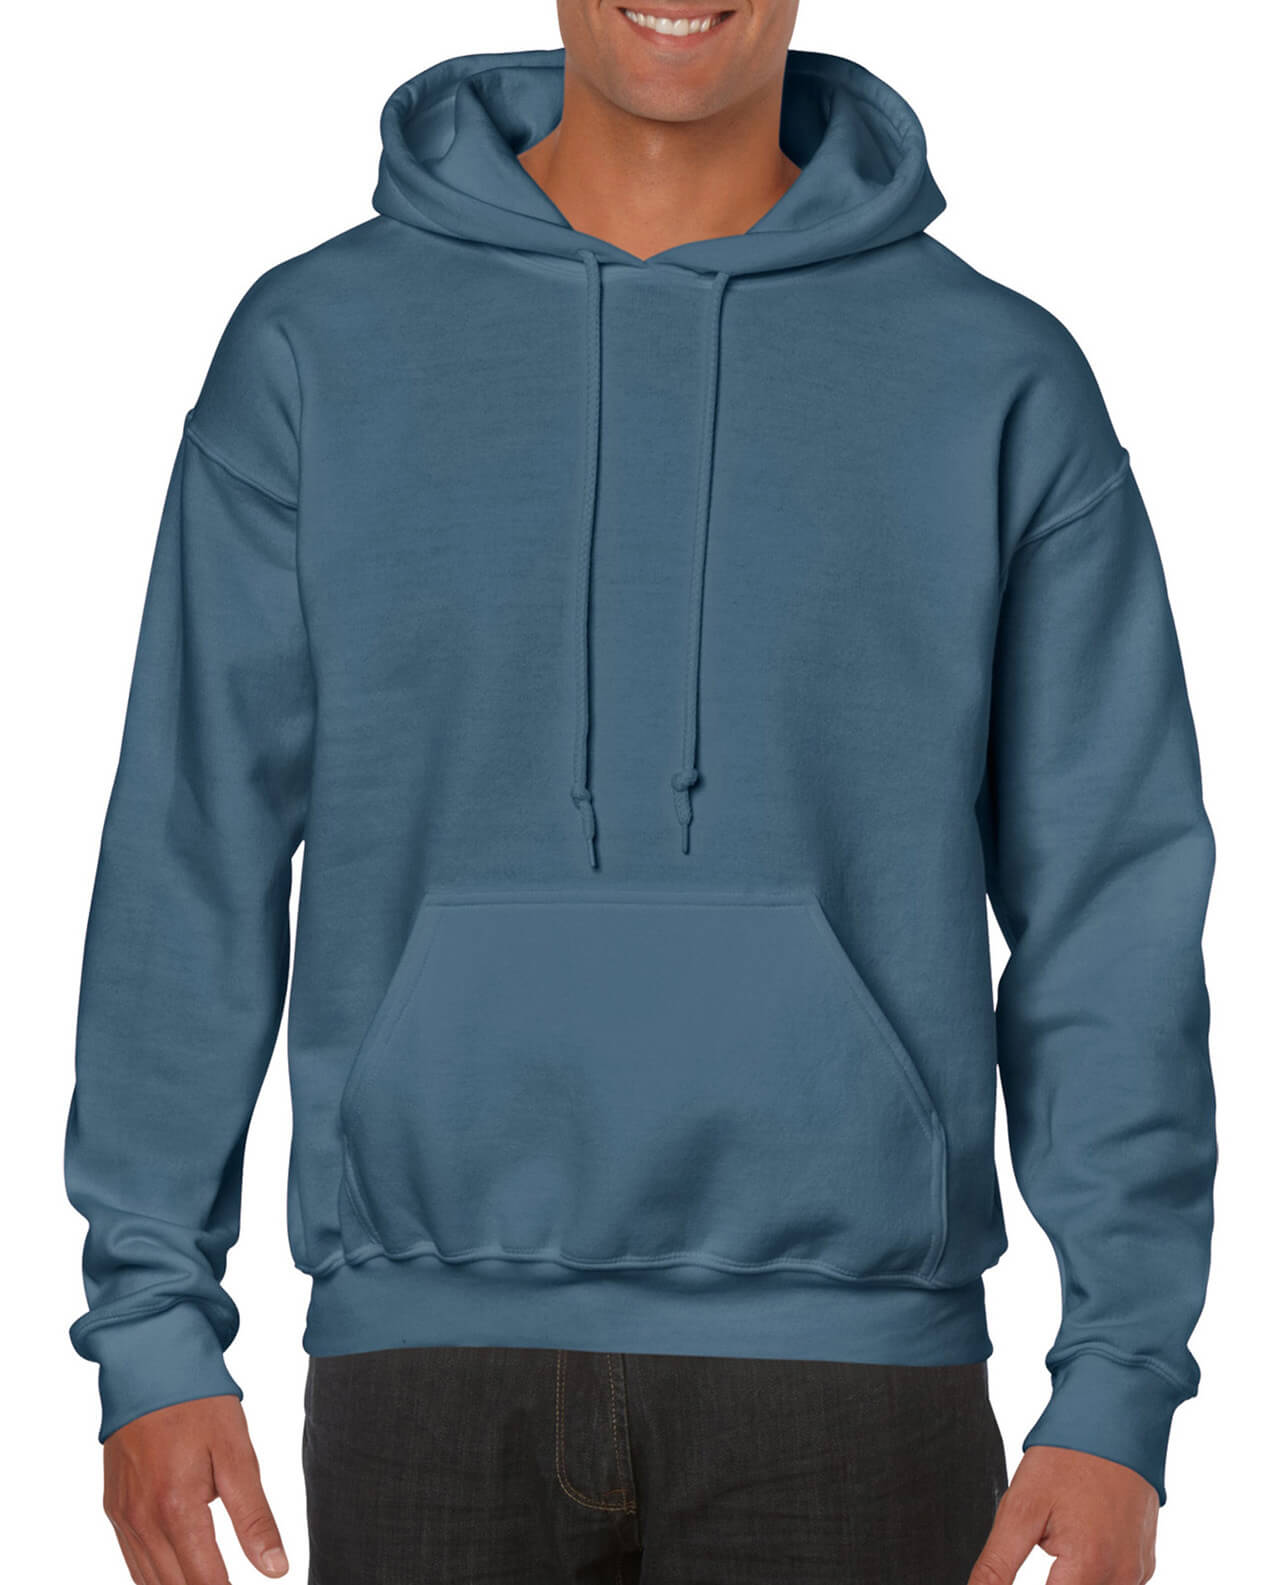 ADULT 50/50 HOODED SWEAT-Indigo Blue